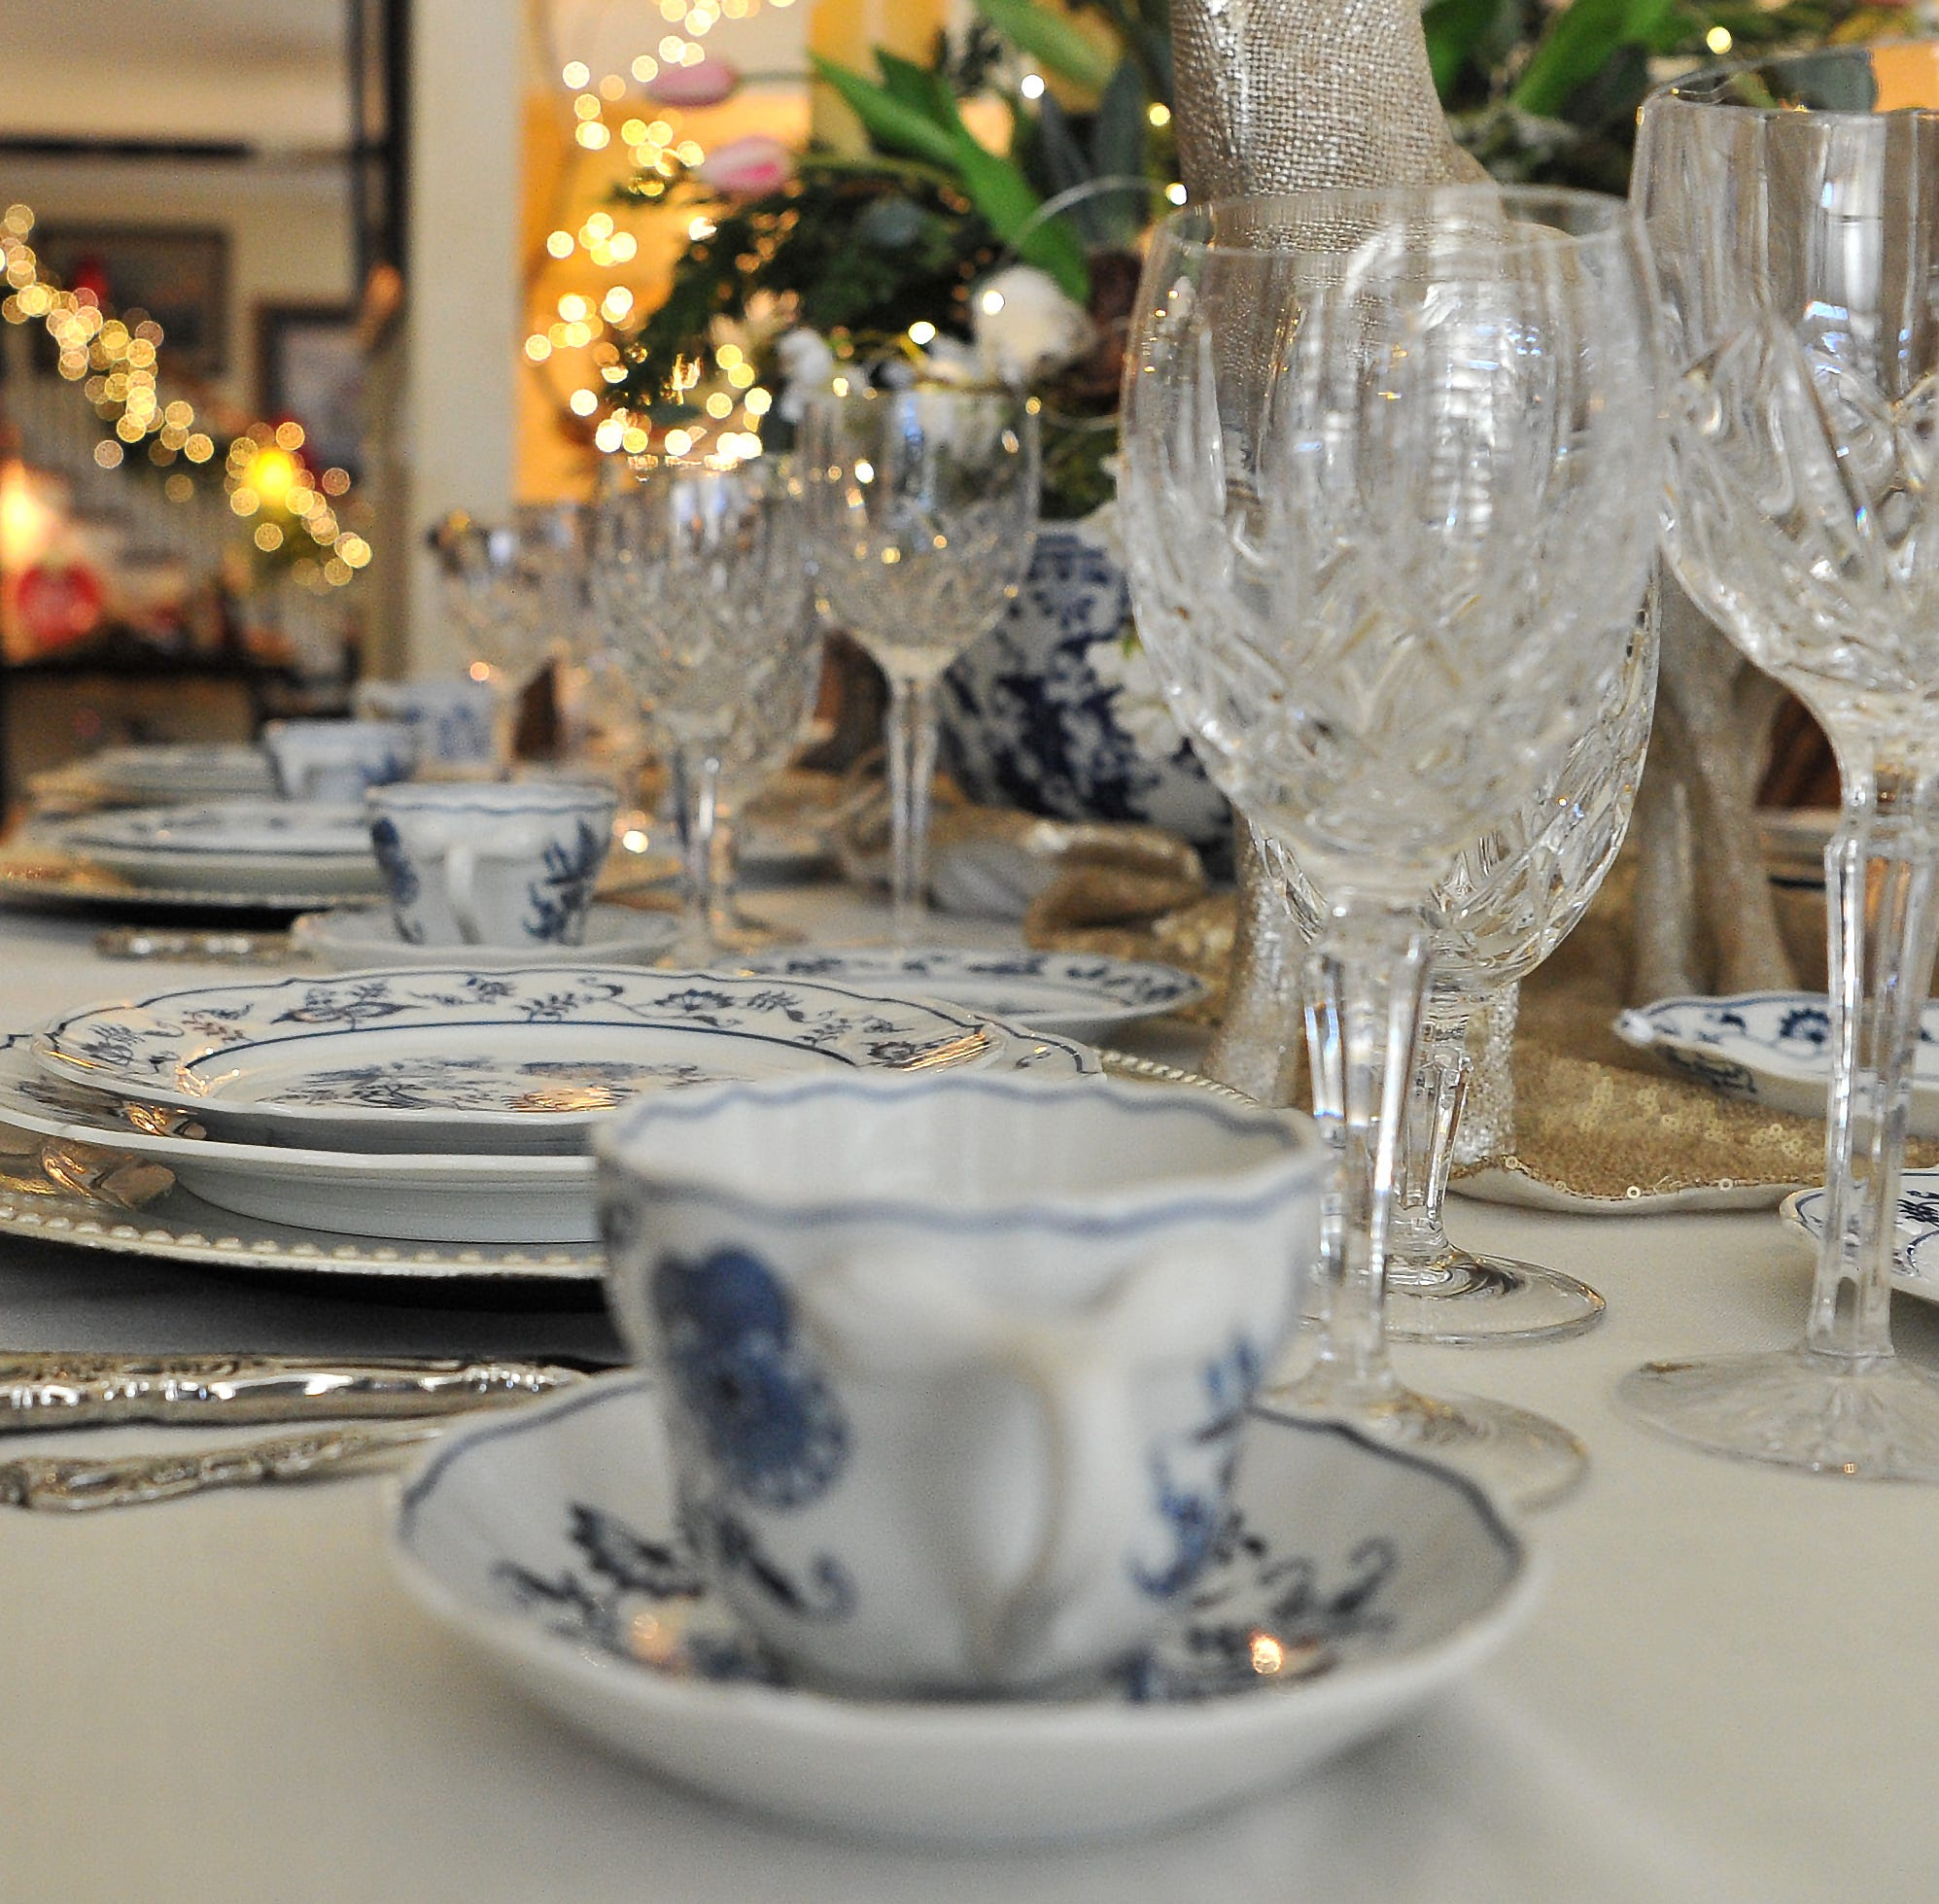 Peak inside the homes decorated in holiday finery